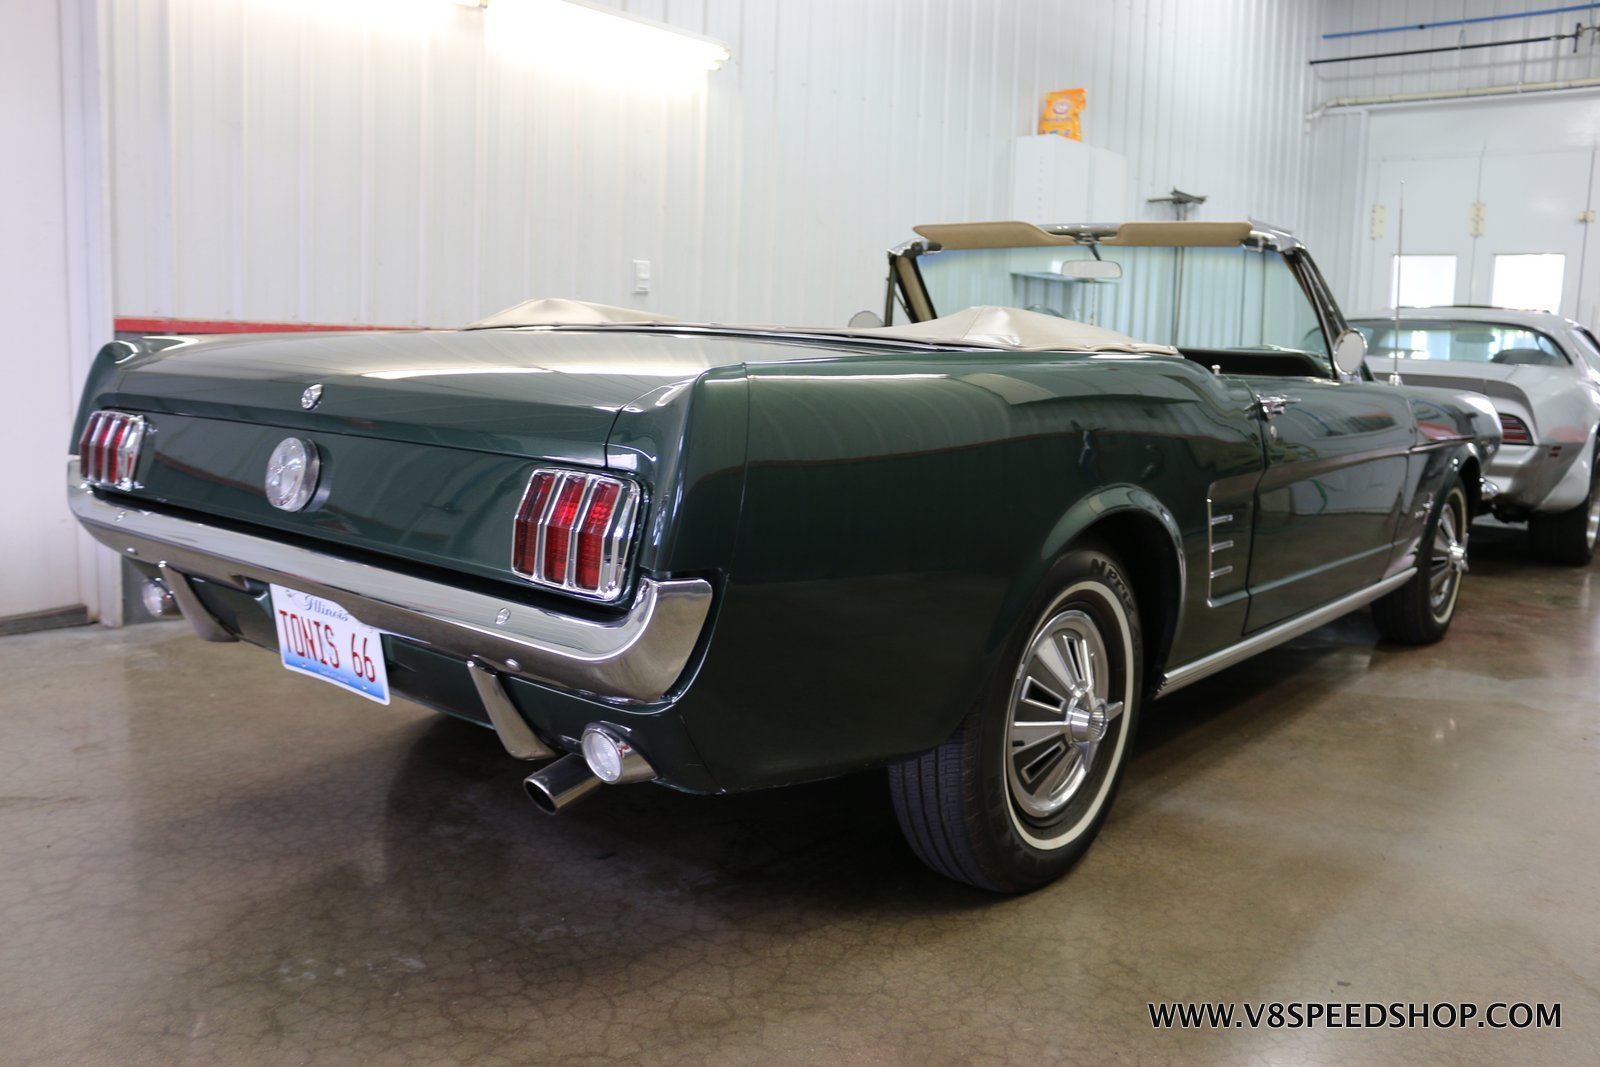 1966 Ford Mustang Convertible Power Steering Upgrade at the V8 Speed and Resto Shop